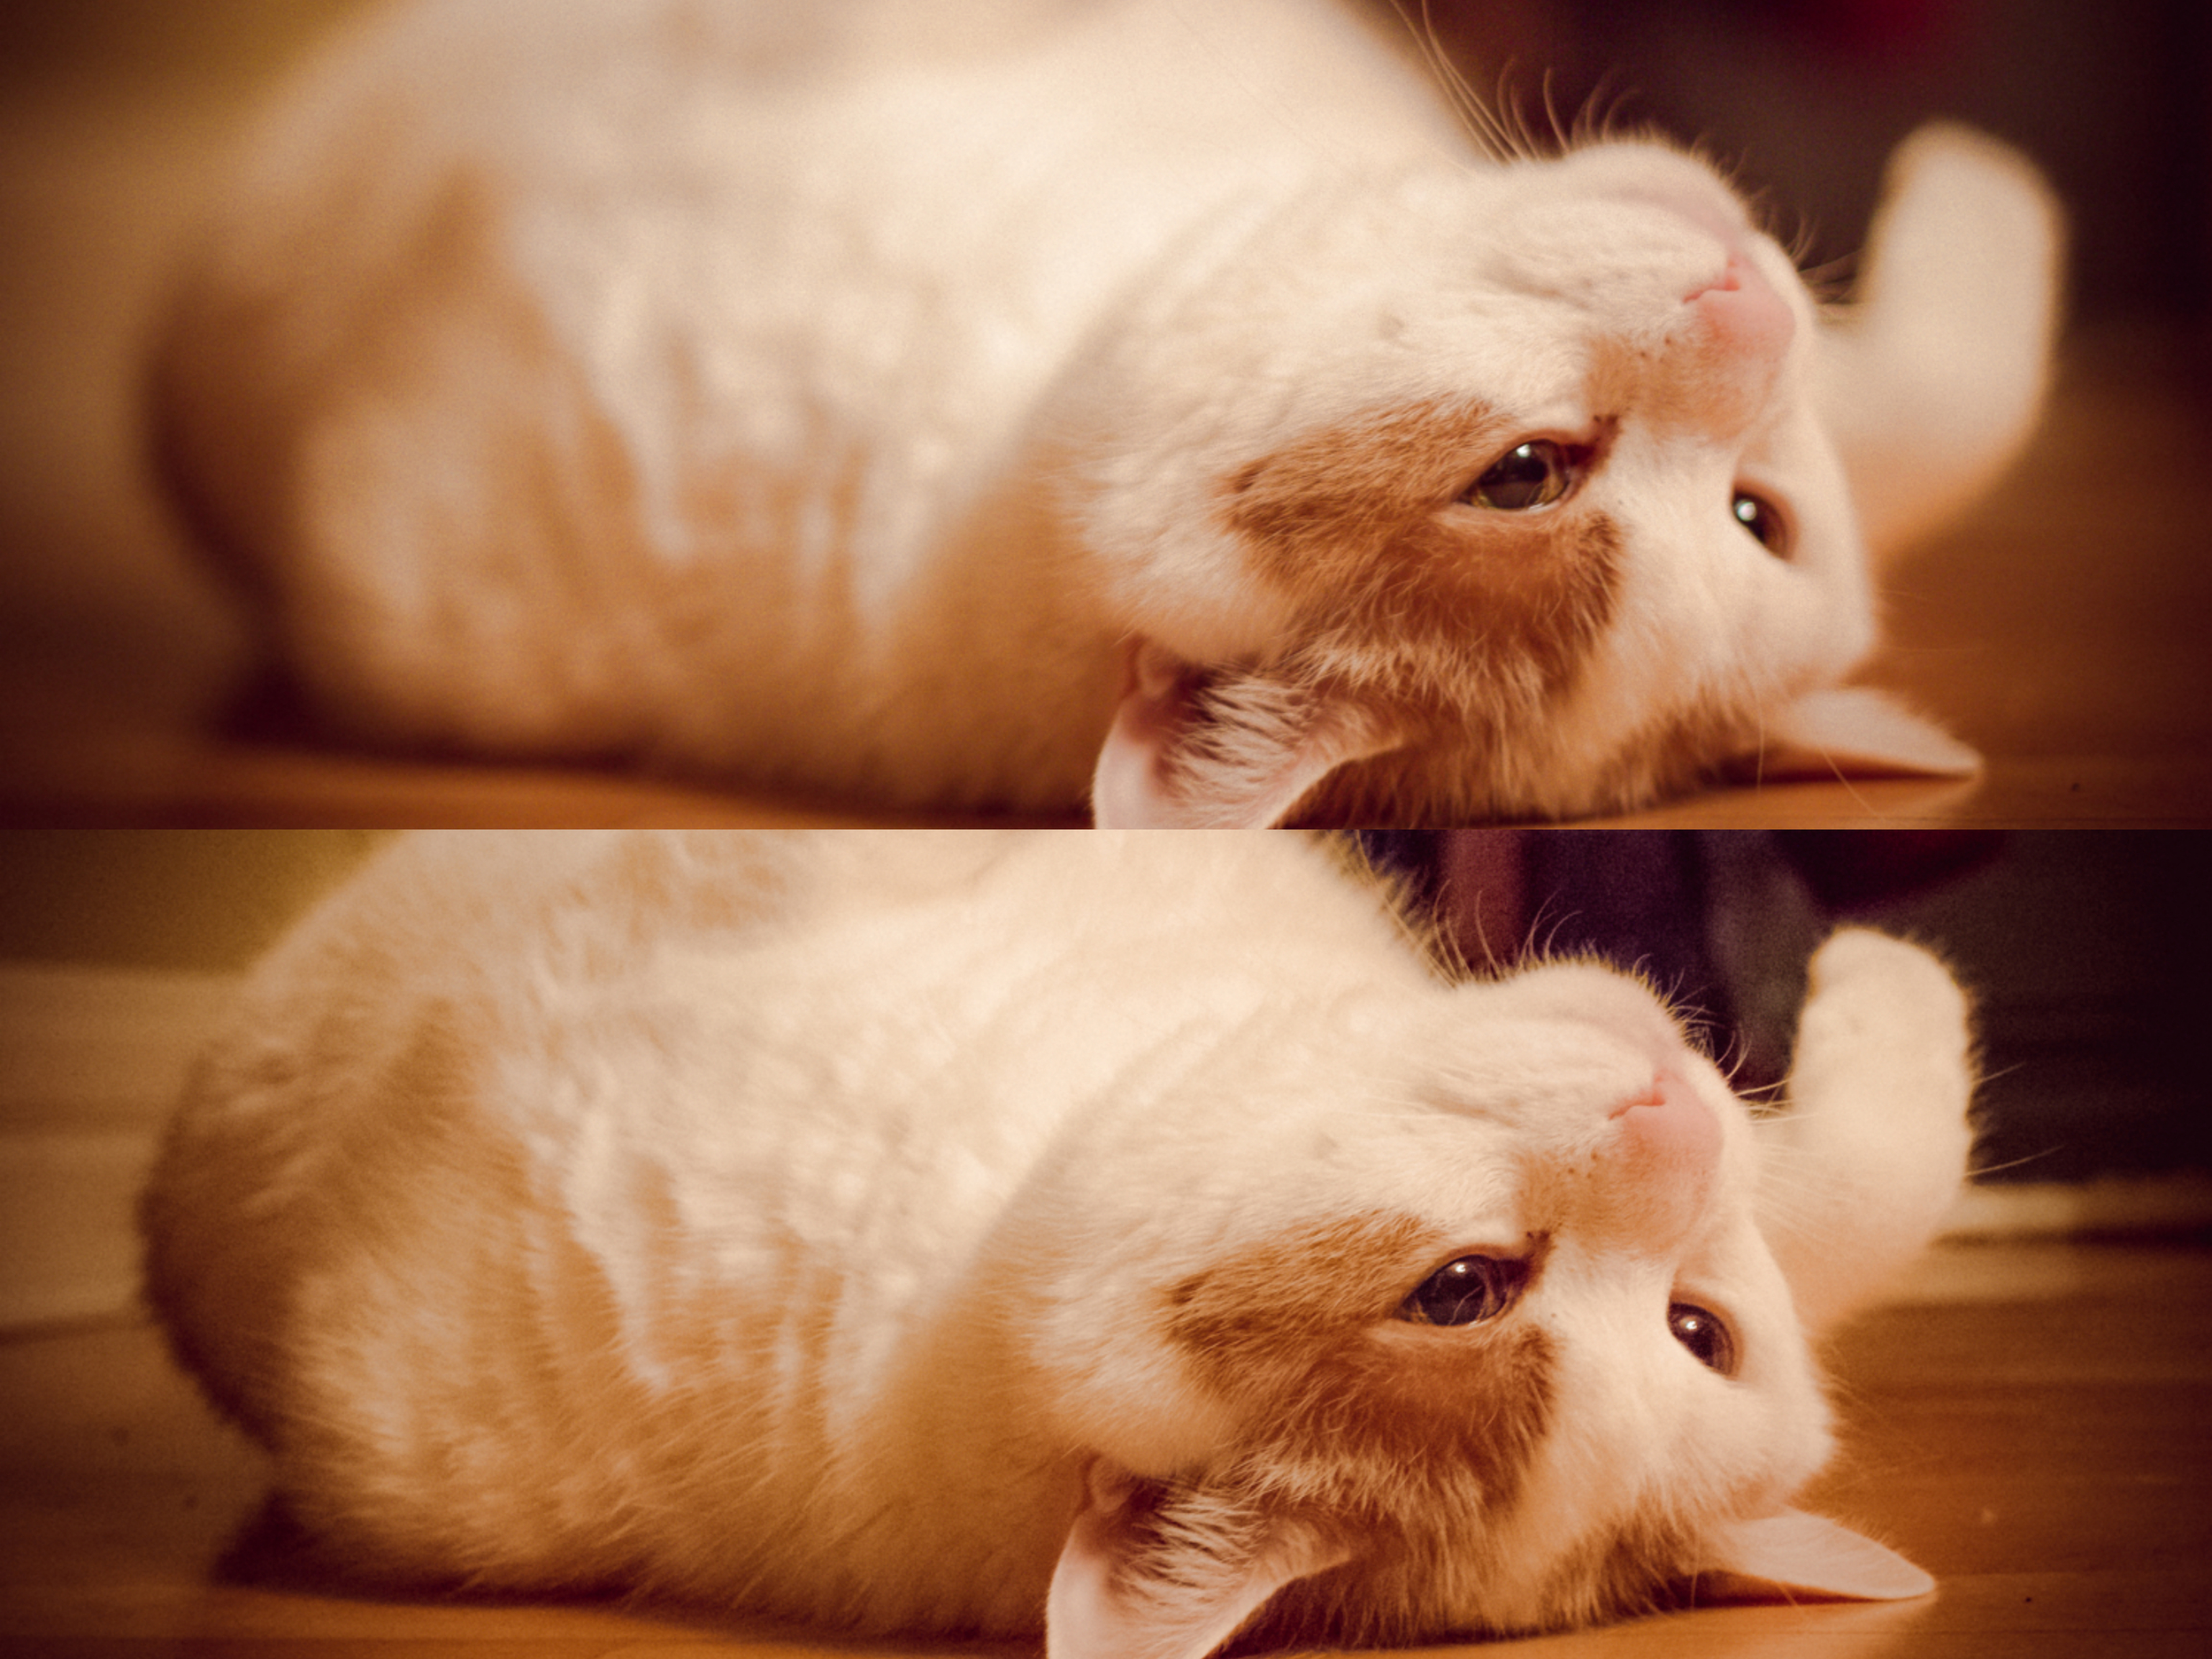 "Top image  F 1.4 : My furry fat cat with his ""assets"" not so revealed  Bottom Image F 10: The whole fat truth revealed!"